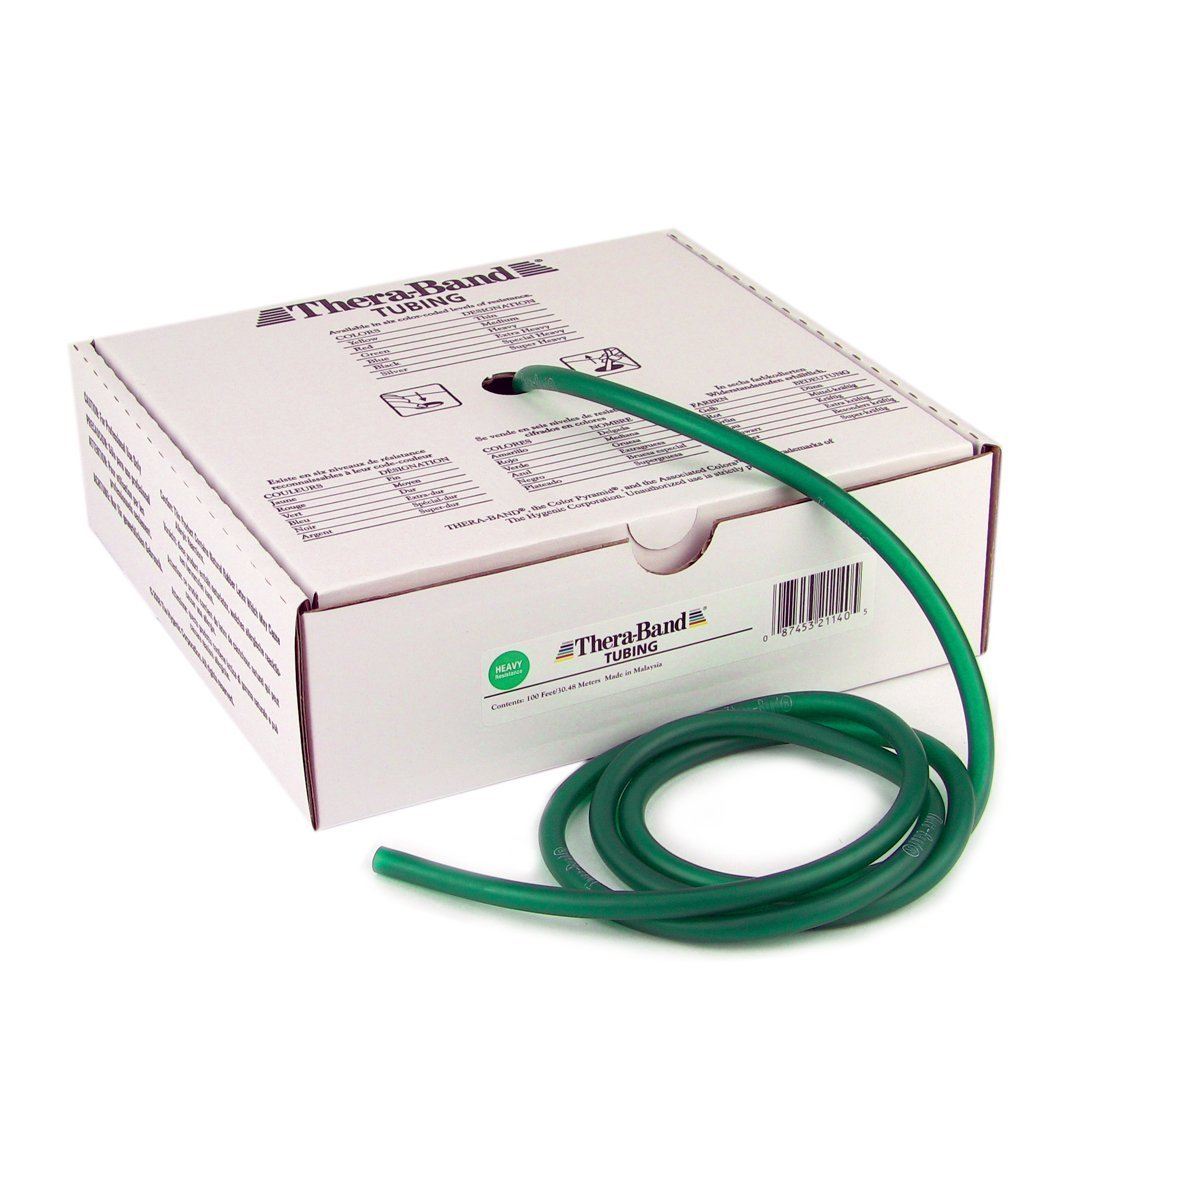 Tubing with Dispenser Box Size / Color: Medium / Green